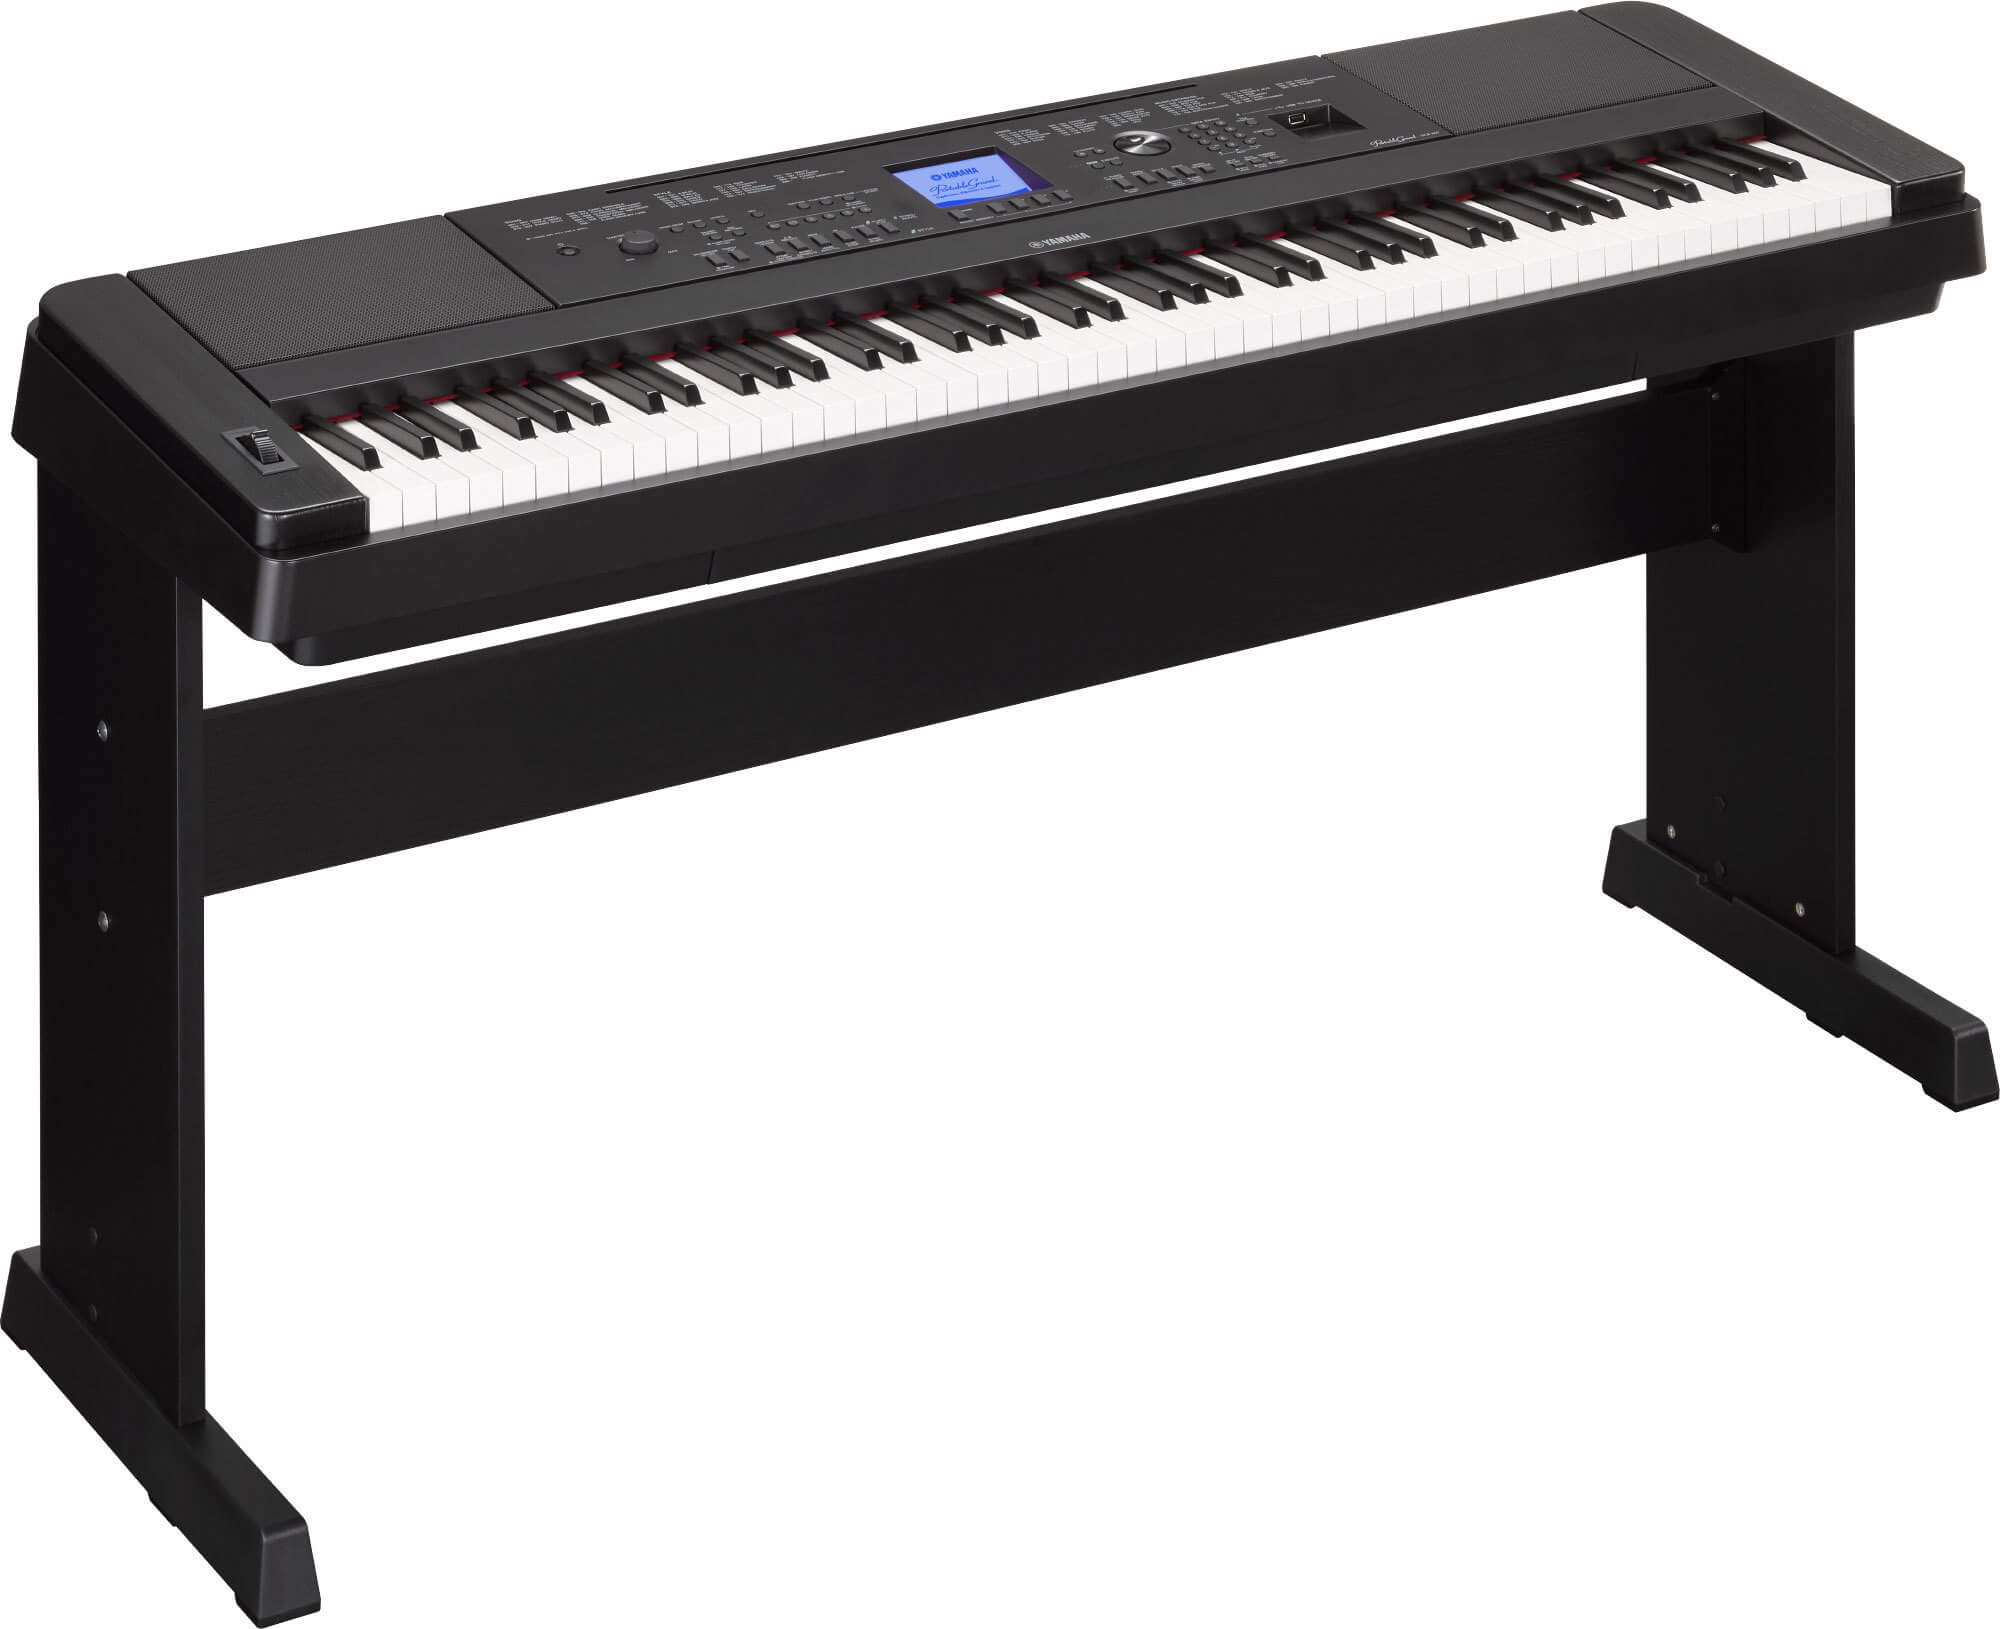 Piano Digital Yamaha Dgx-660